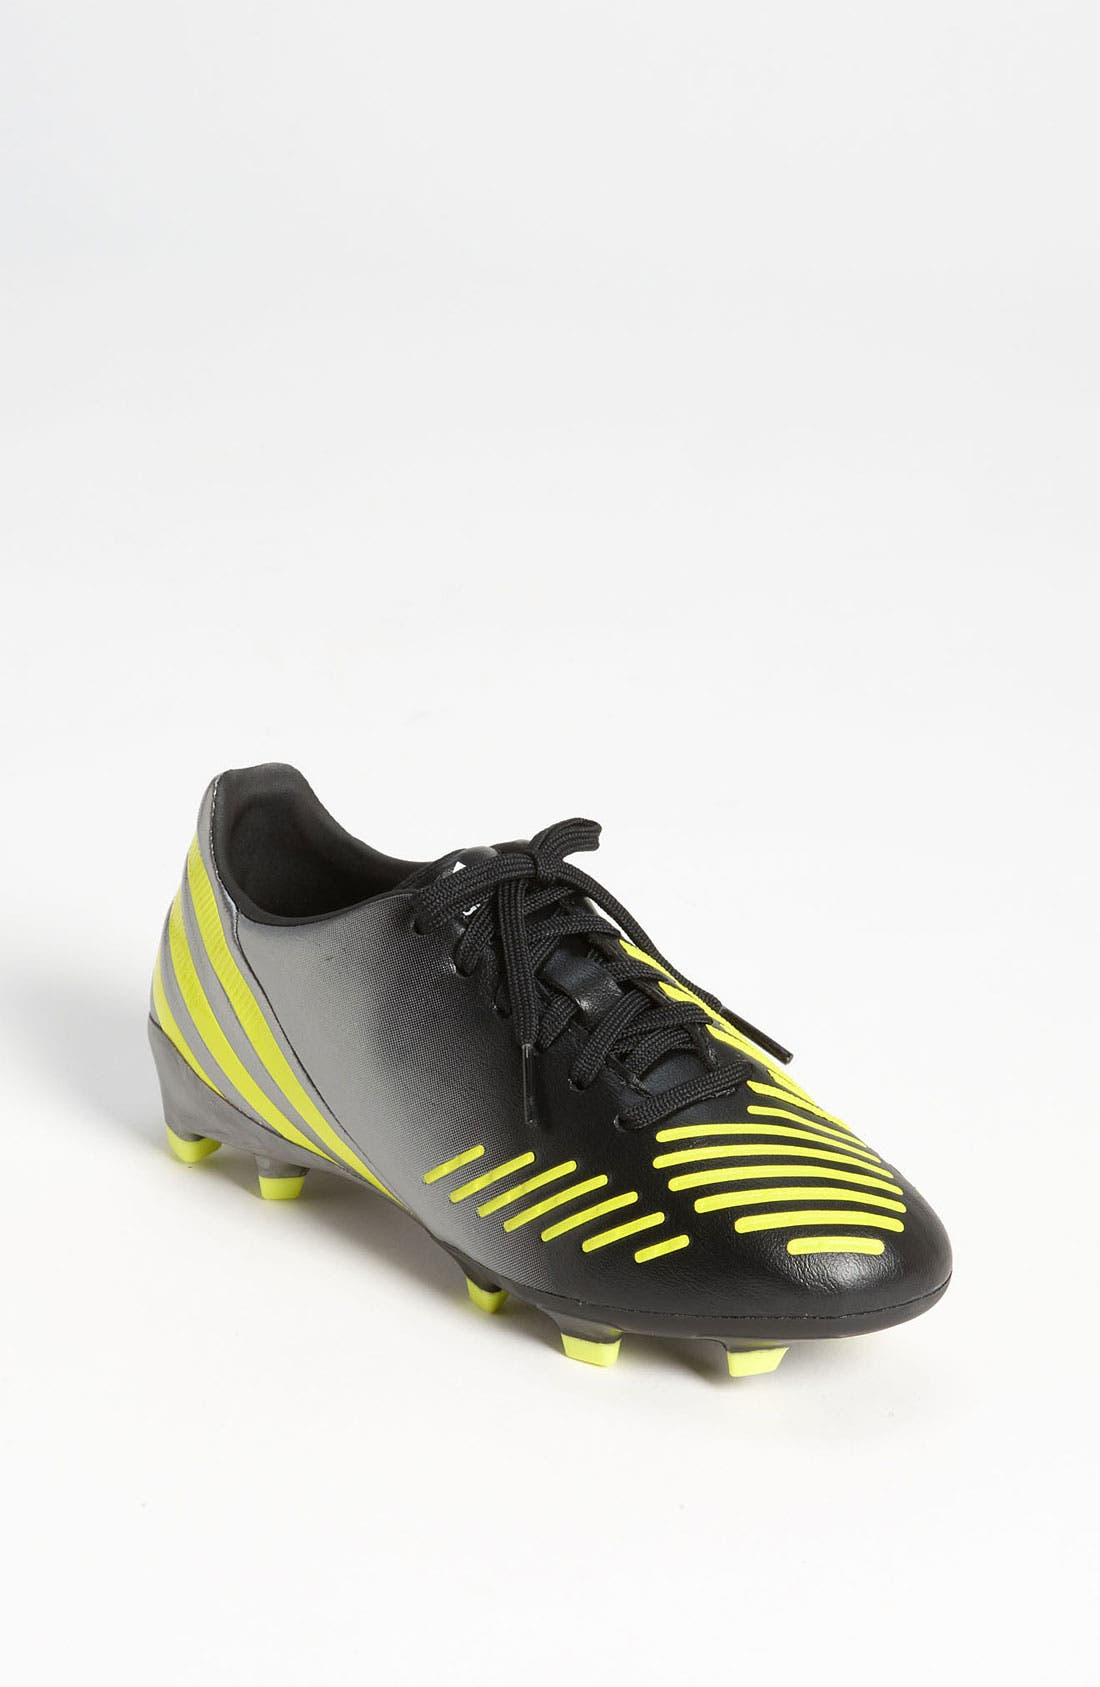 Alternate Image 1 Selected - adidas 'Predator Absolado LZ TRX FG' Soccer Shoe (Toddler, Little Kid & Big Kid)